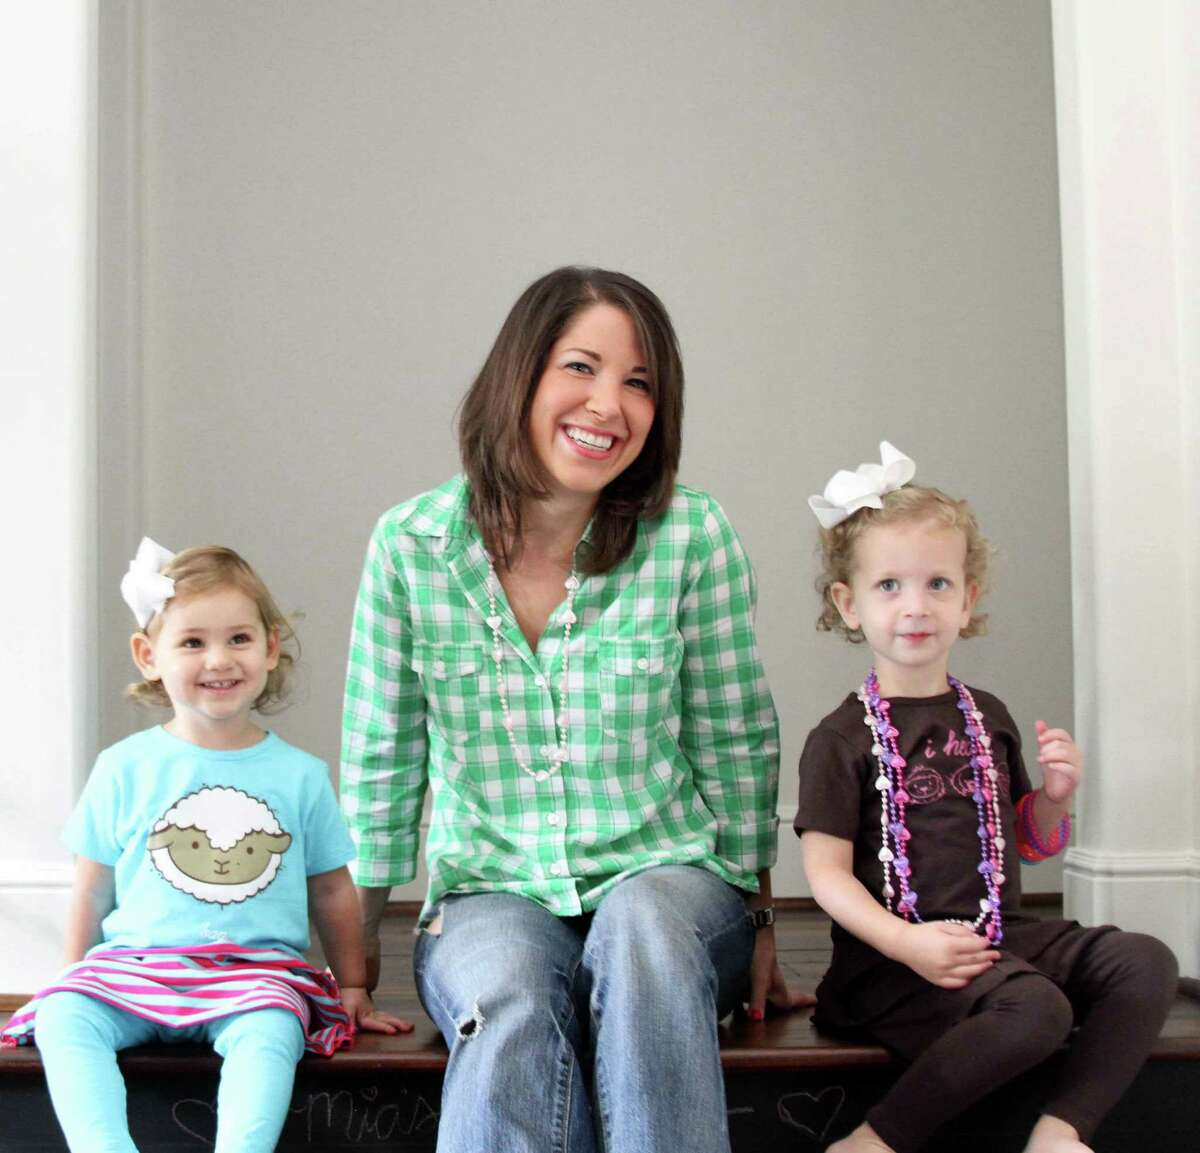 Esther Freedman, shown with Mia Laviage, 2, recently launched the Cuteheads.com online boutique for children's clothing.